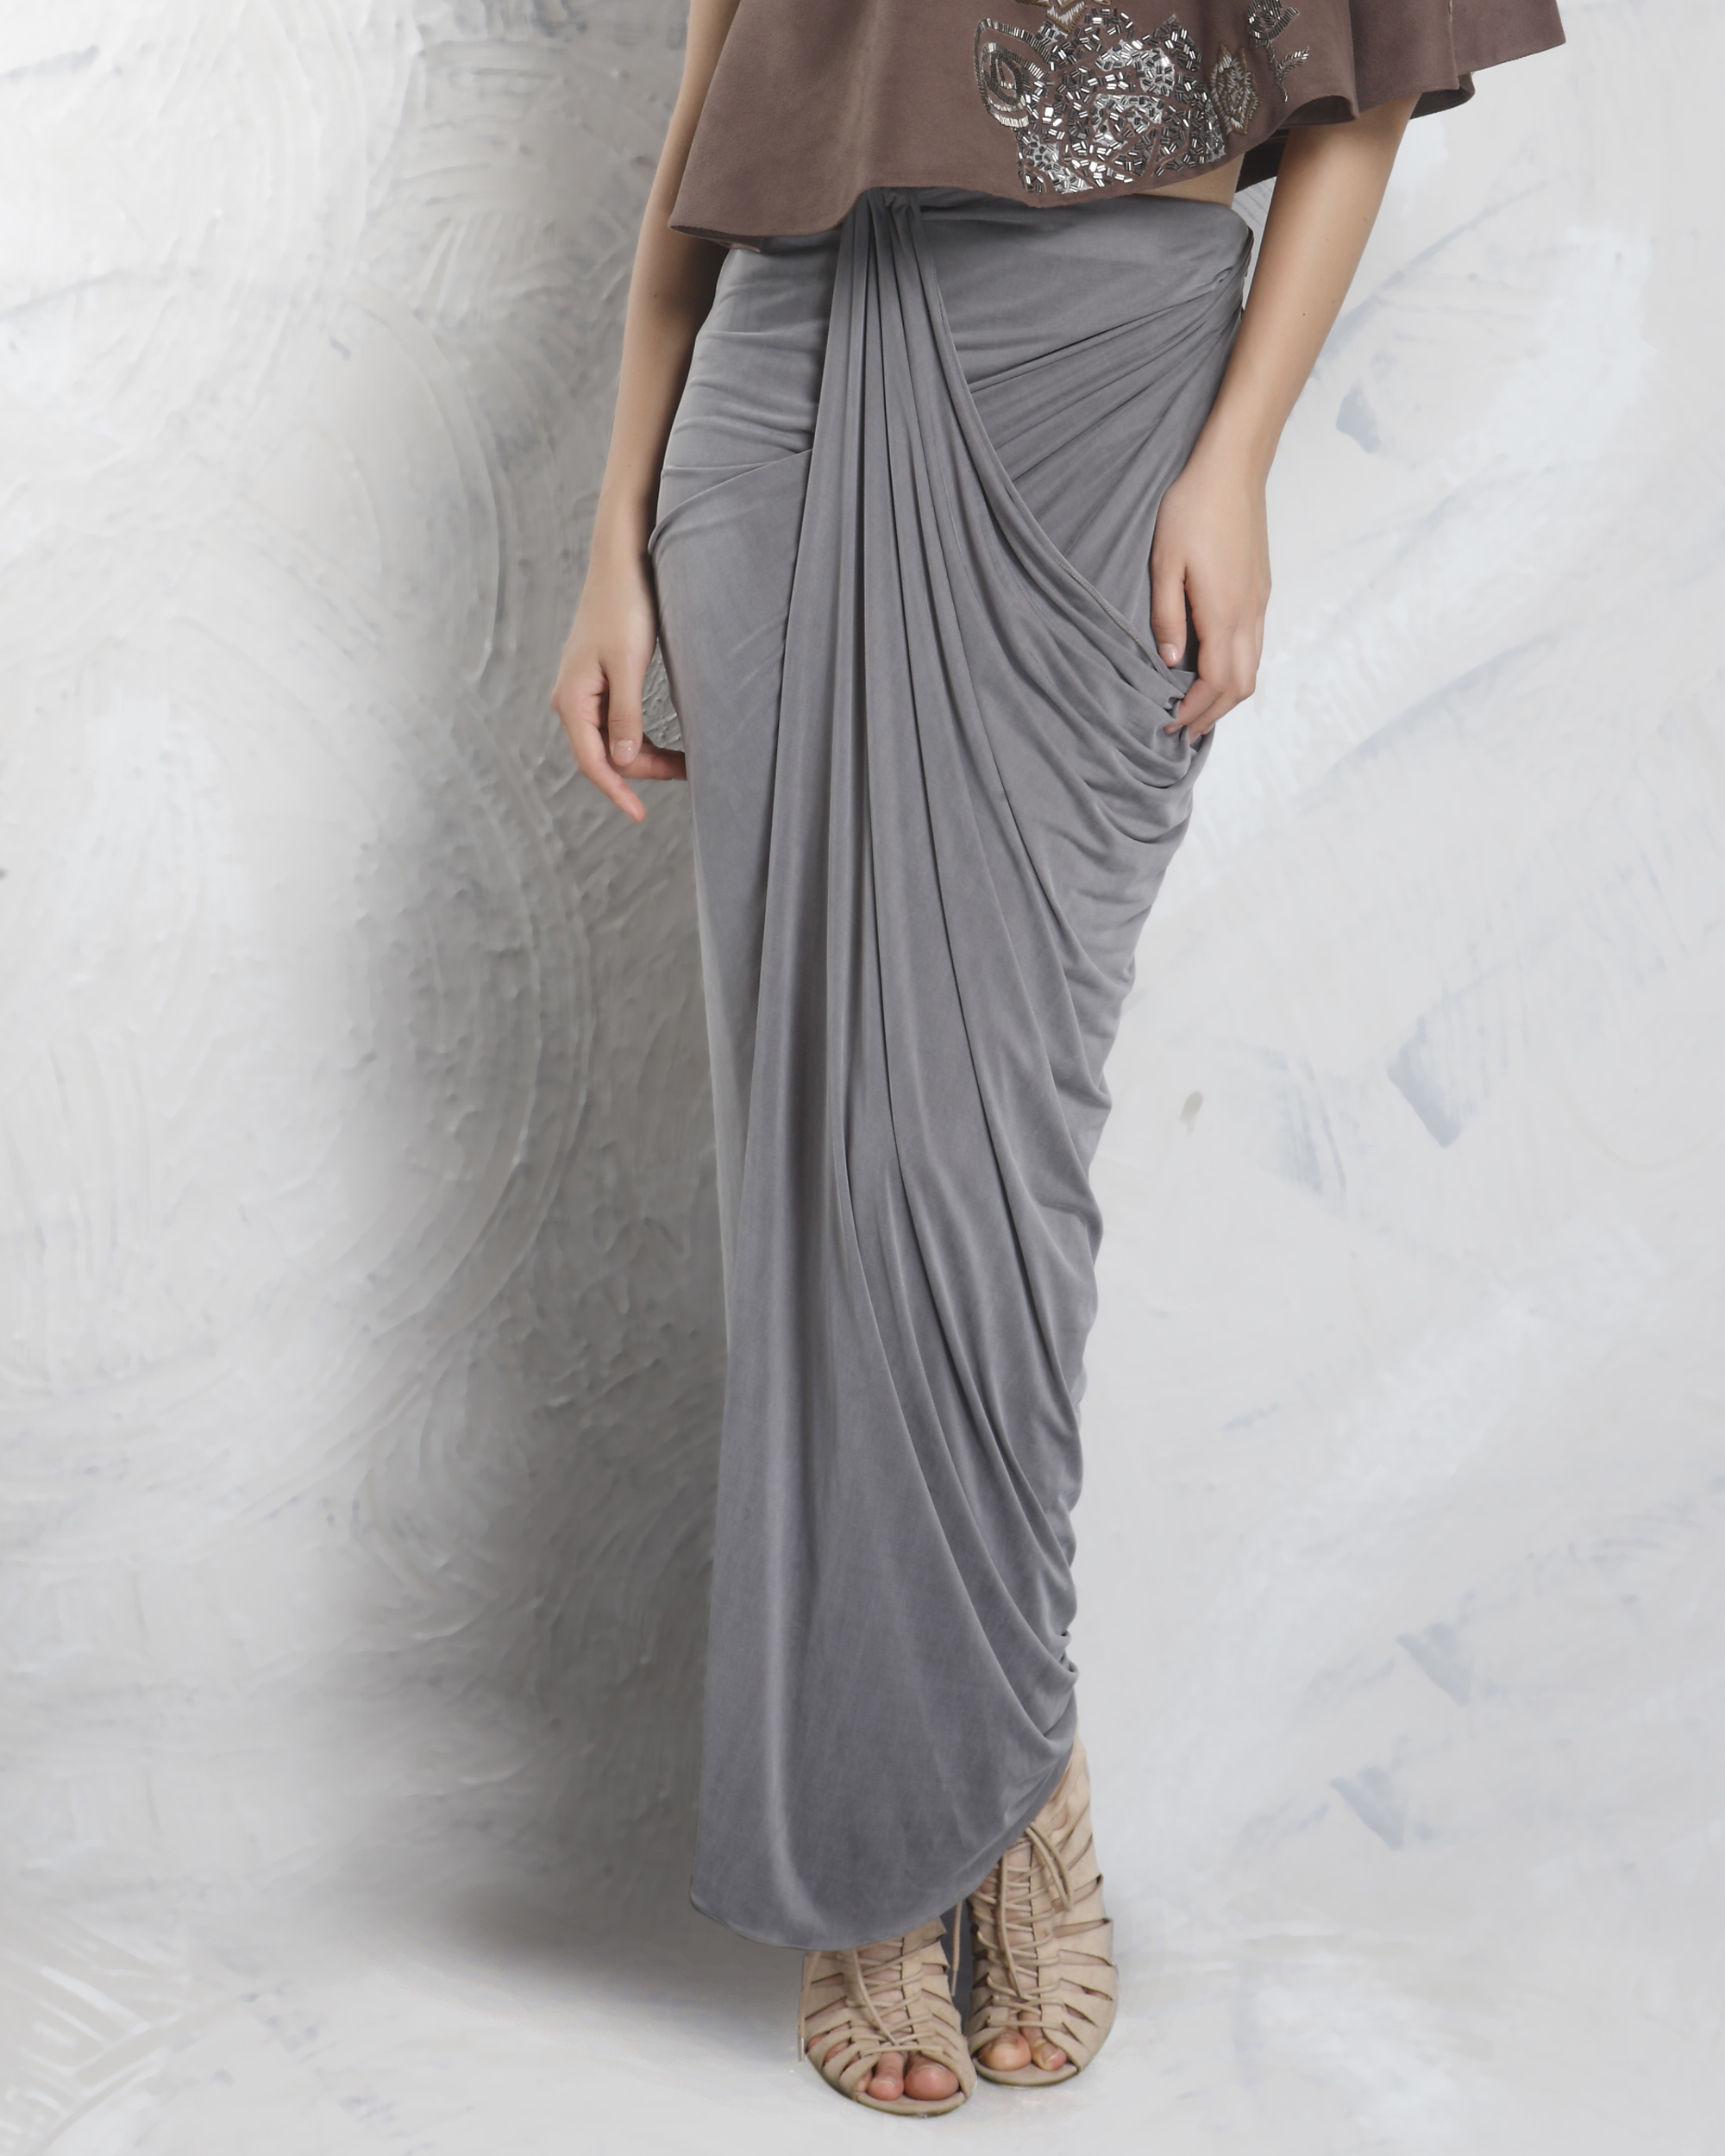 Grey drape skirt